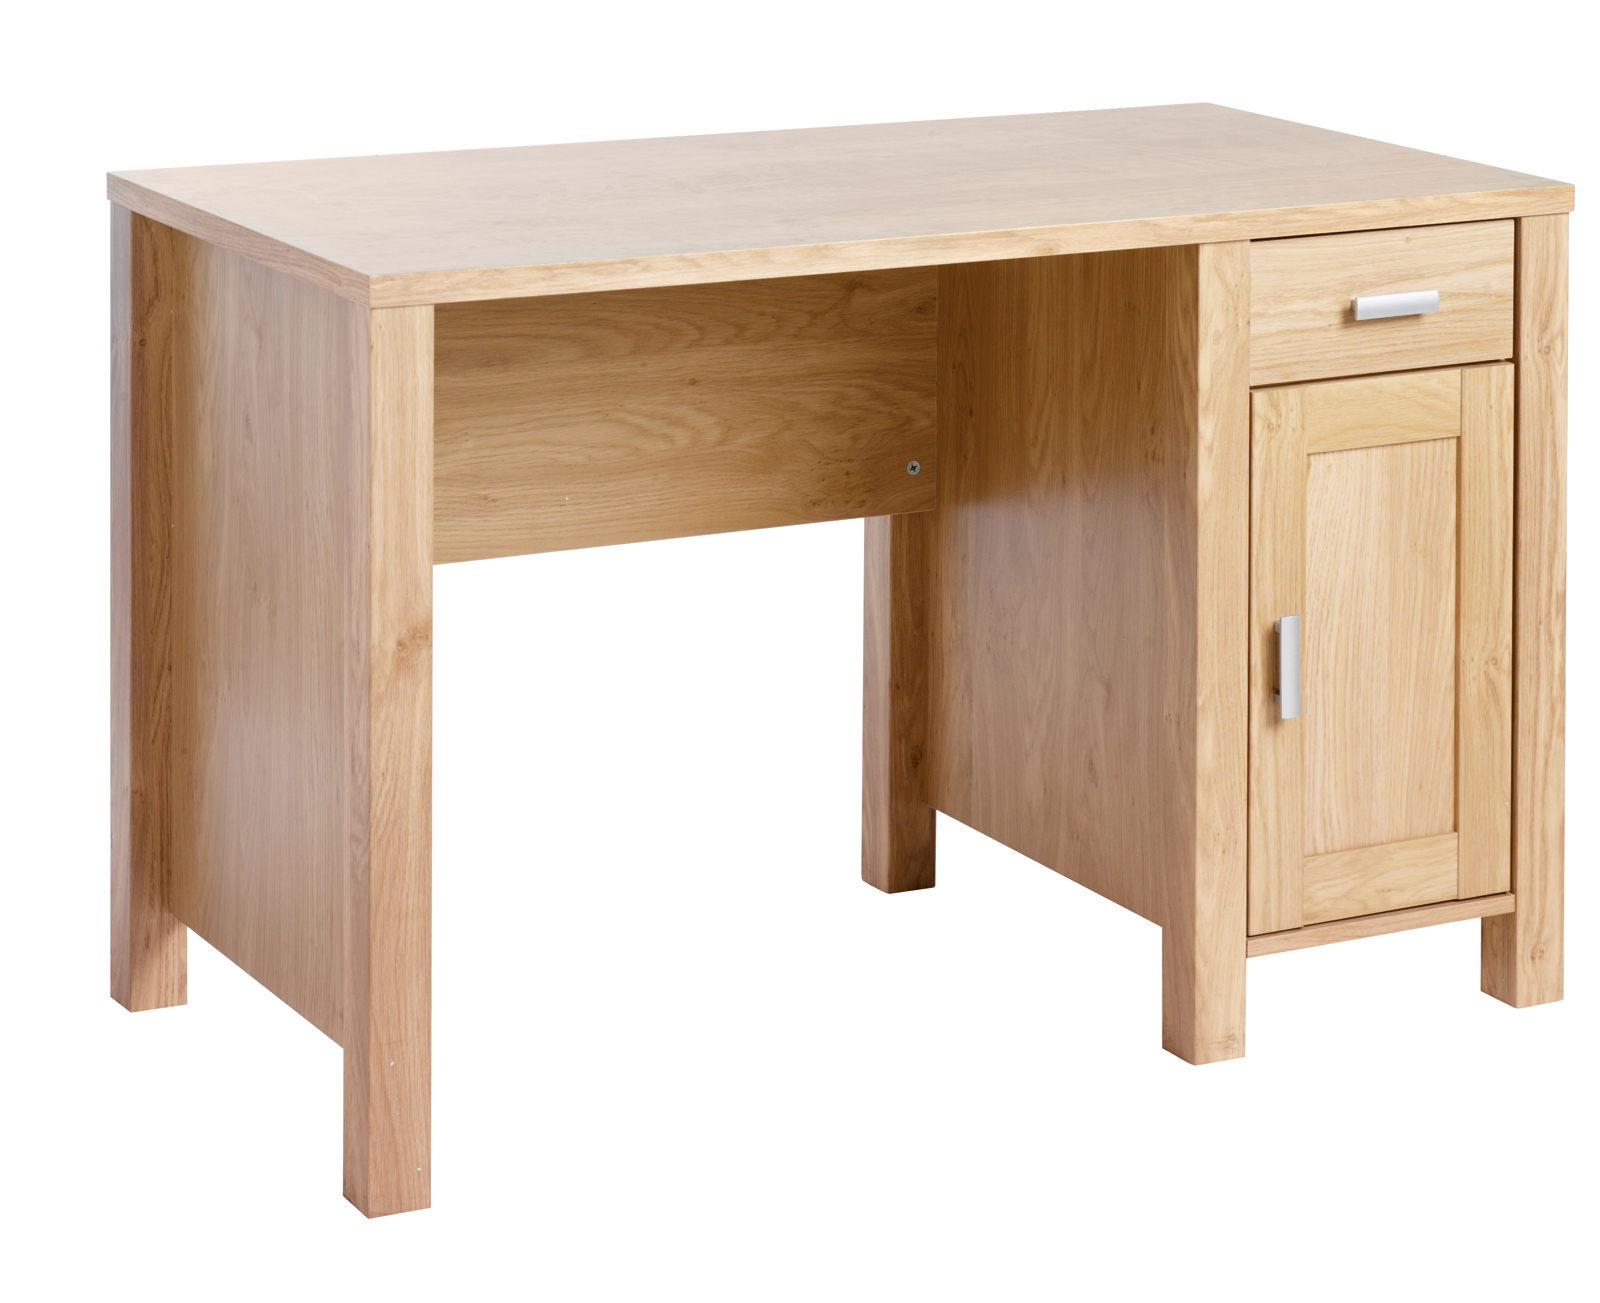 Amazon workstation Oak with Drawer